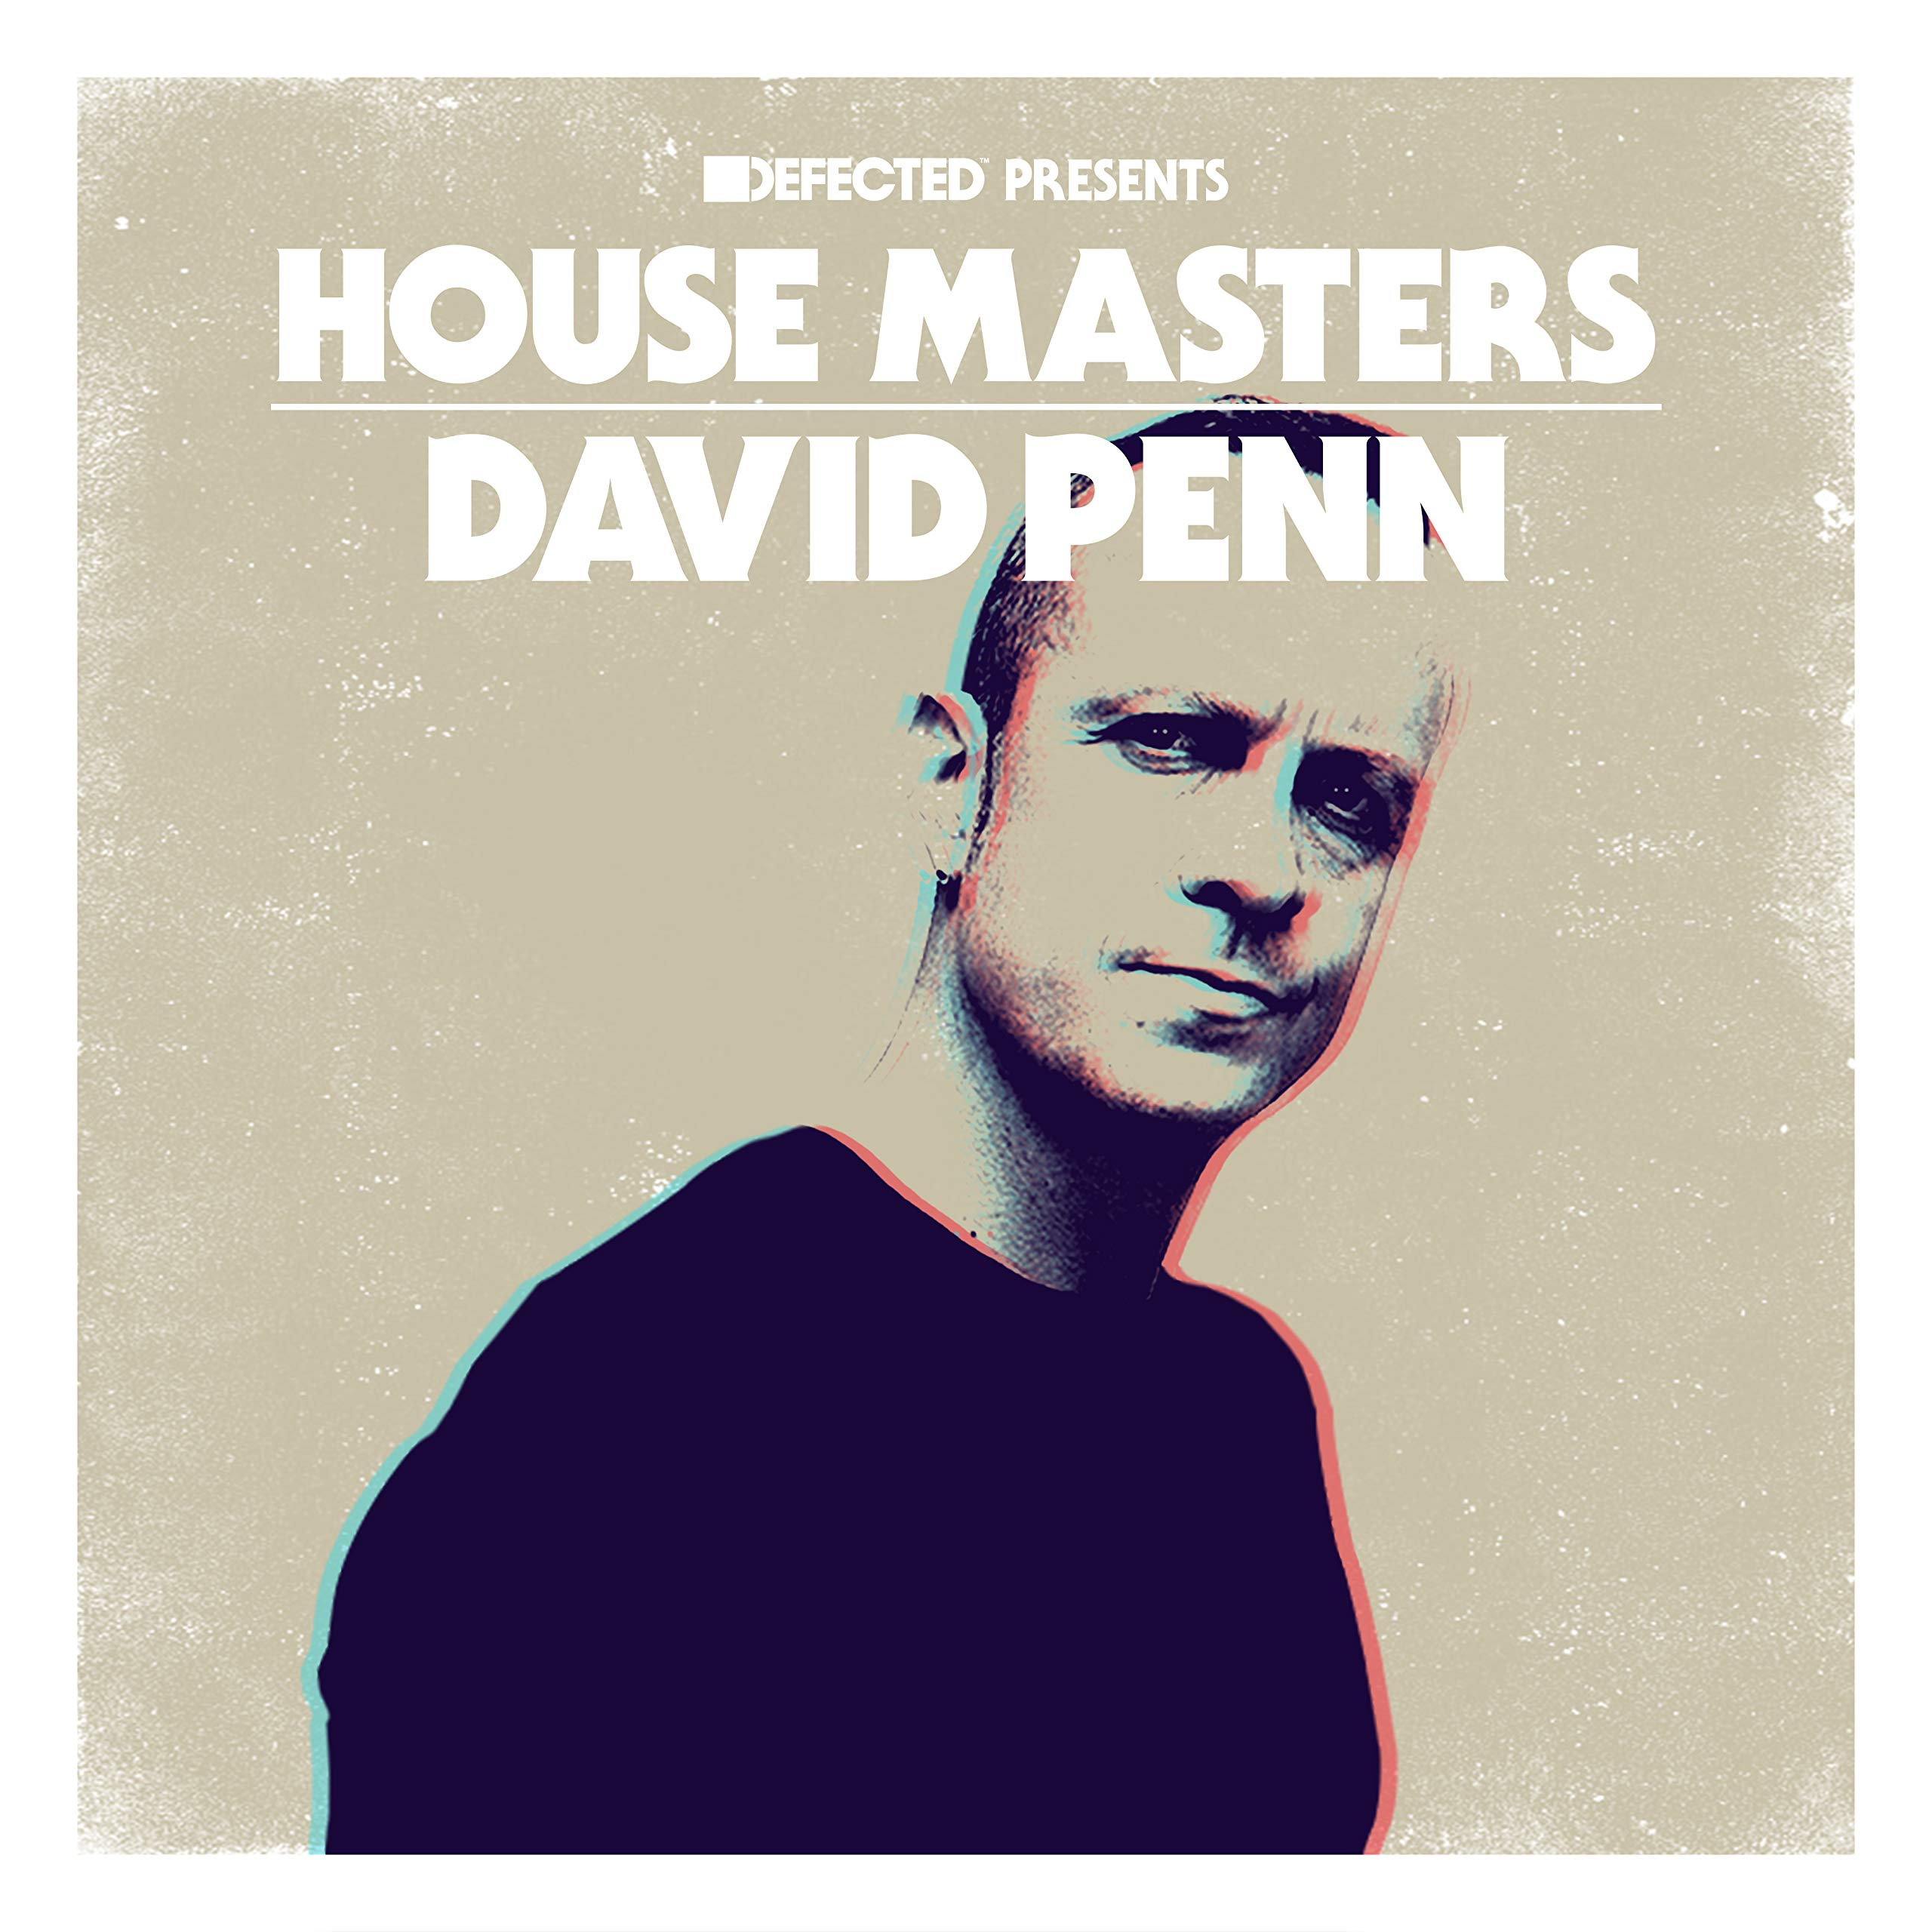 VA – Defected Presents House Masters David Penn (2020) [FLAC]